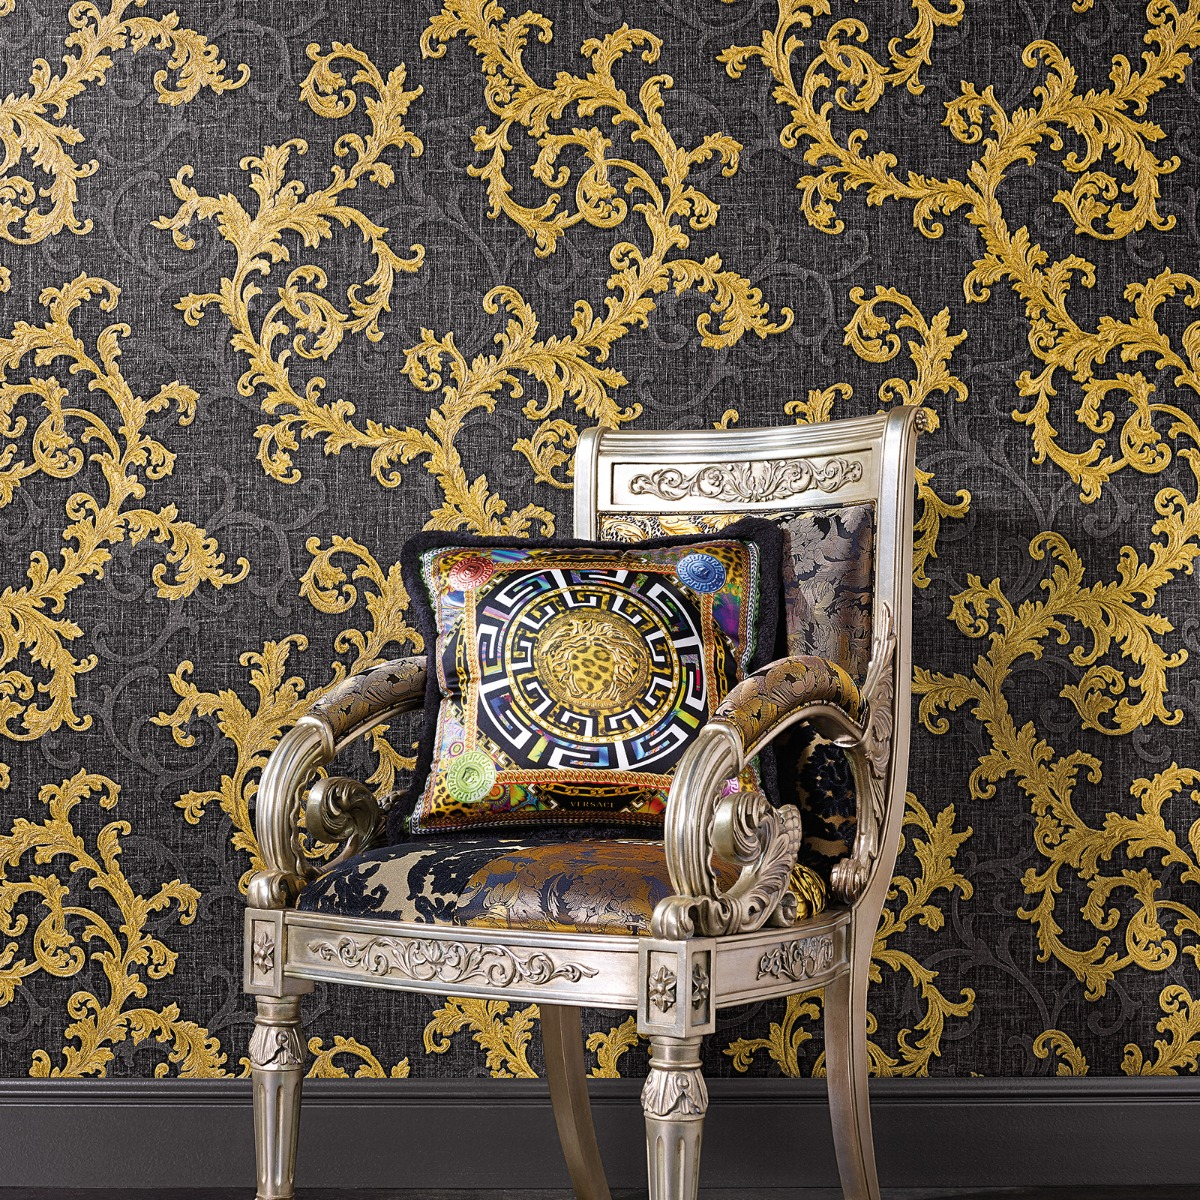 Versace Baroque Floral Trail Wallpaper - Black and Gold - 96231-6 - 10m x 70cm